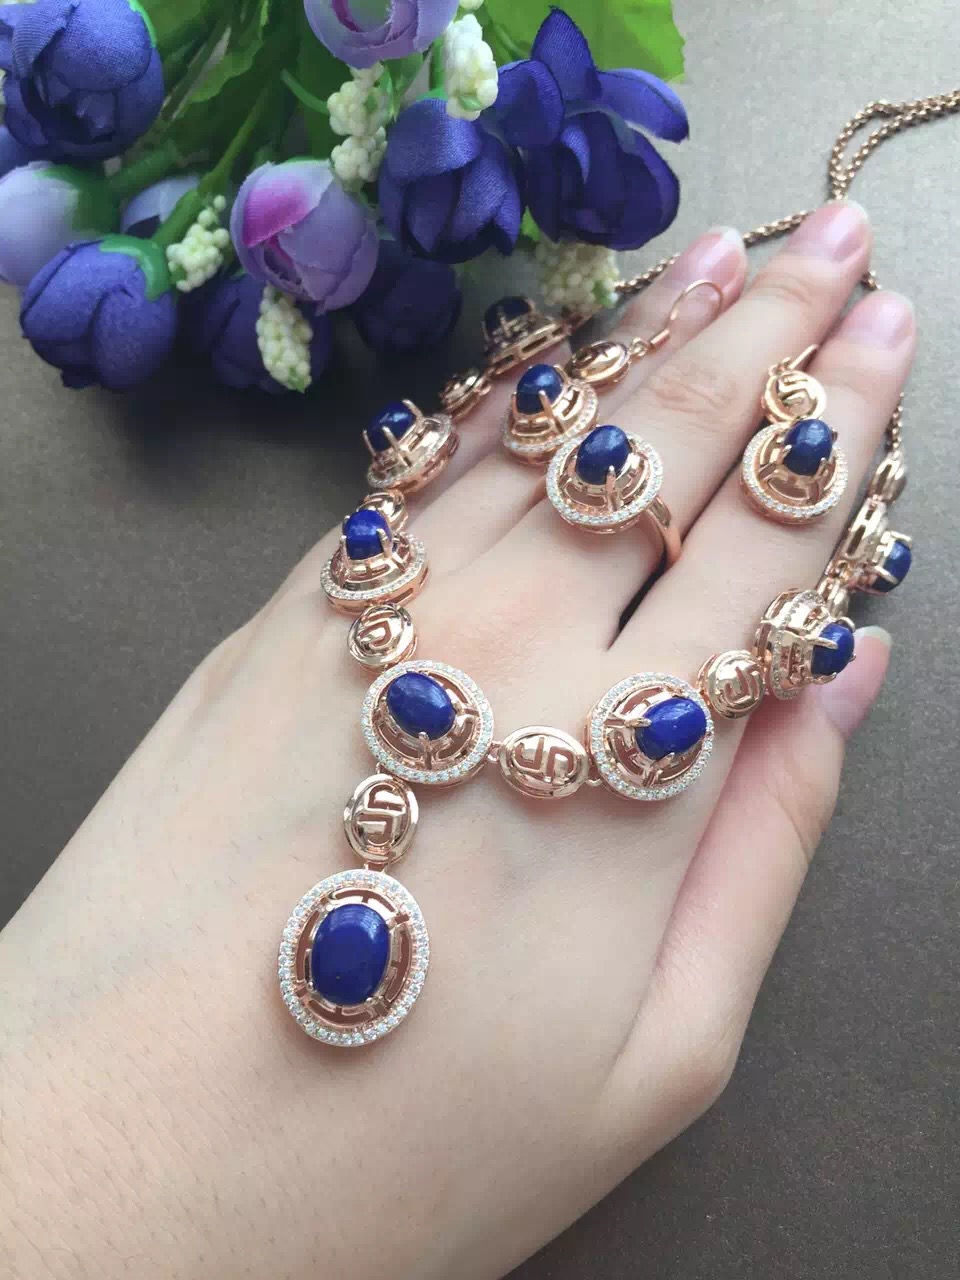 11.11 Celebration great present 925 sterling silver natural Lapis Lazuli Sets stone fine jewelry sets for women <br><br>Aliexpress